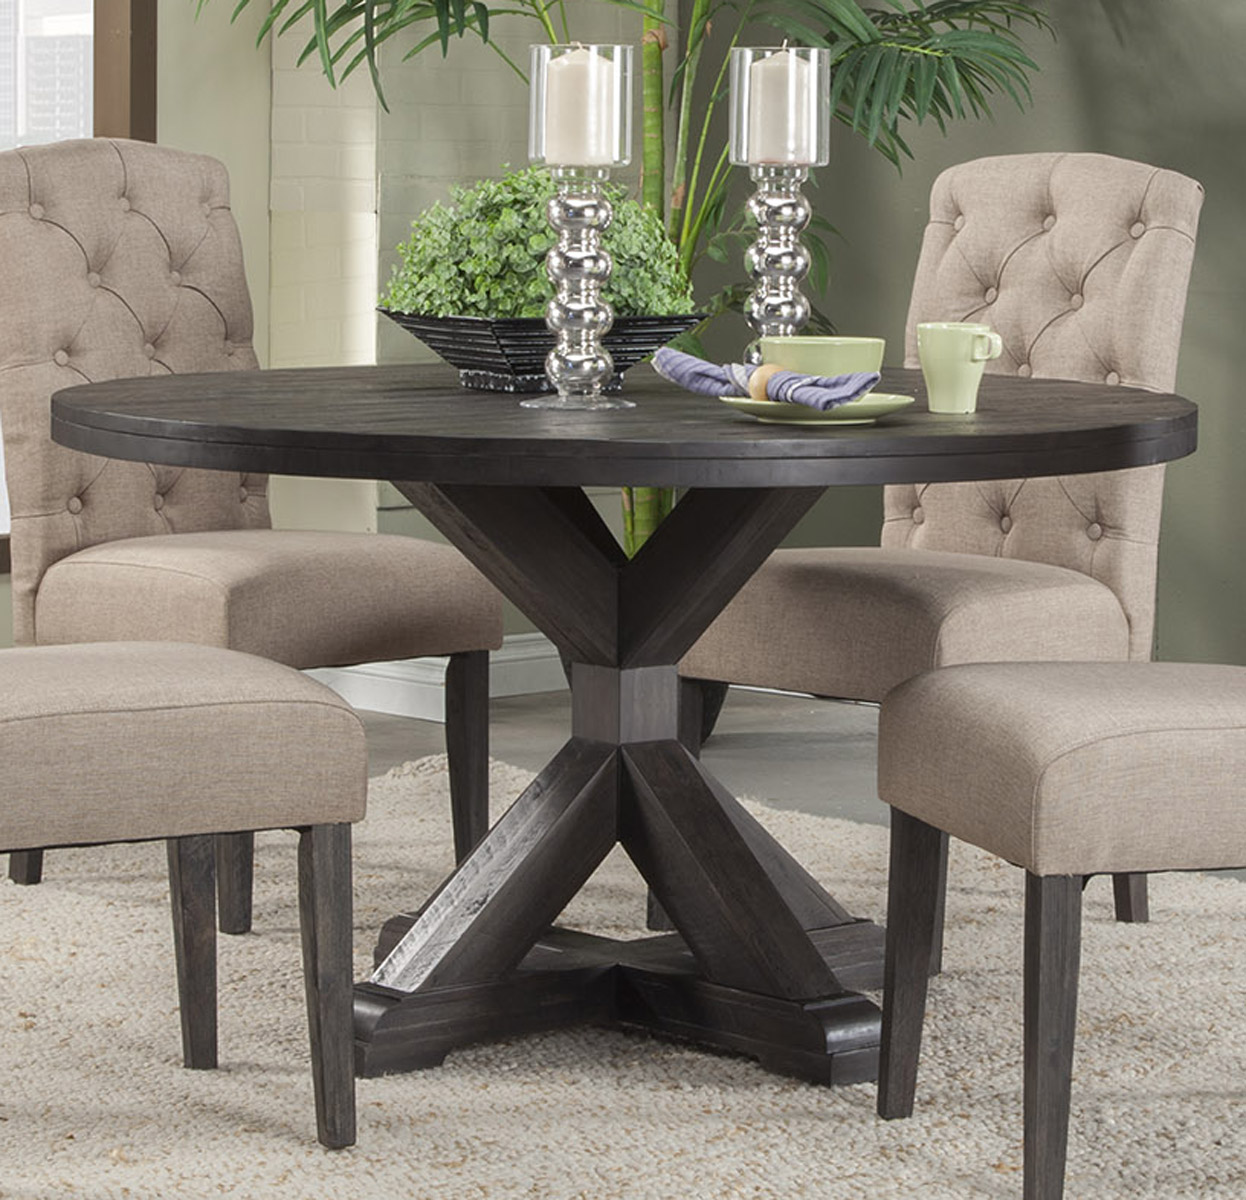 Alpine Furniture Newberry Round Dining Table in Salvaged